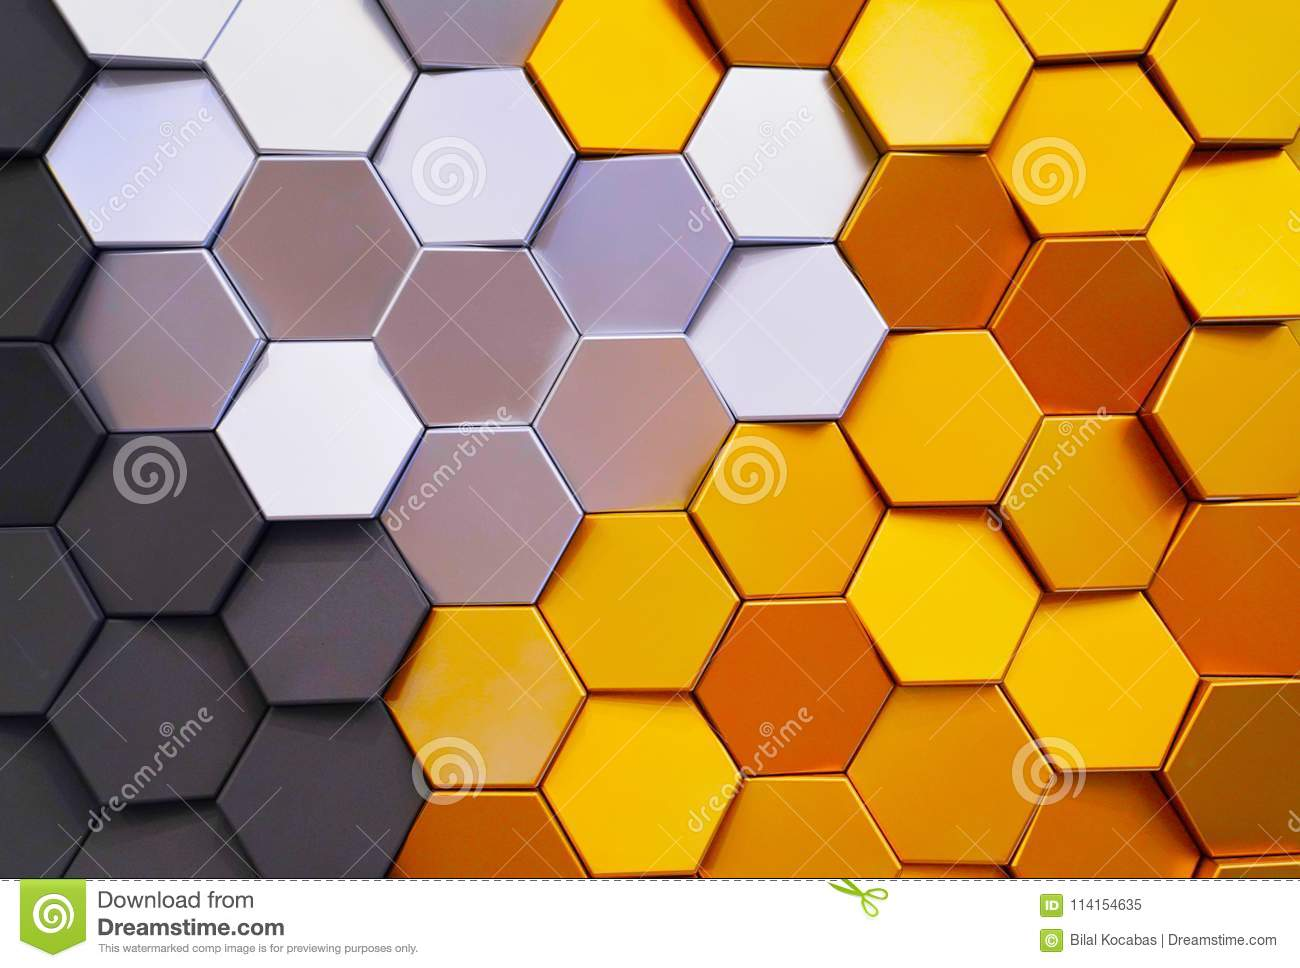 Honeycomb Shape Colorful Decorative Ceramic Tiles On Wall Stock